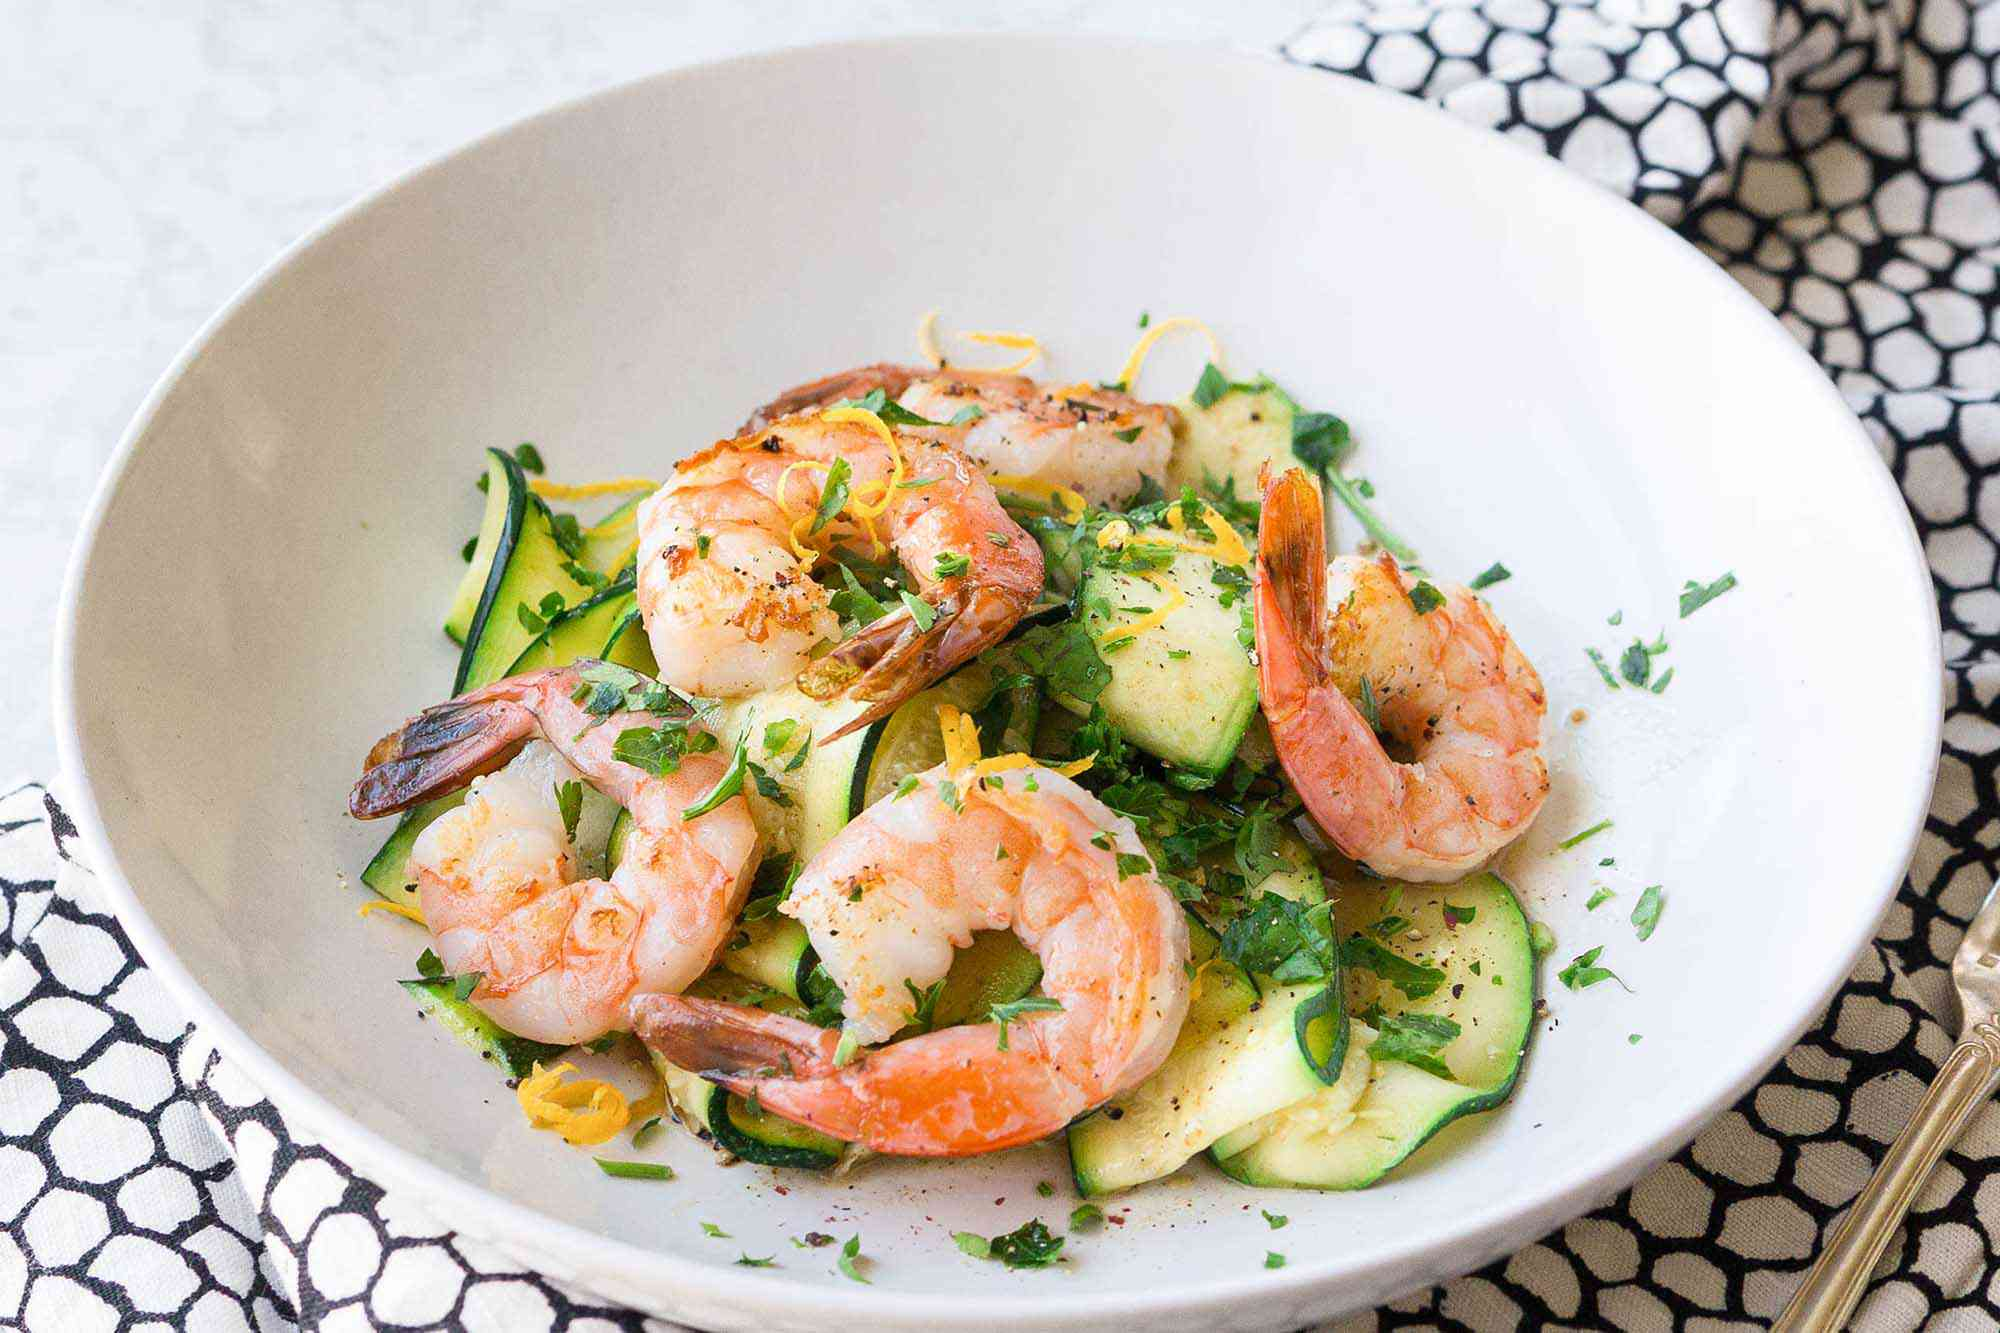 Zucchini Noodles with Shrimp and Lemon-Garlic Butter